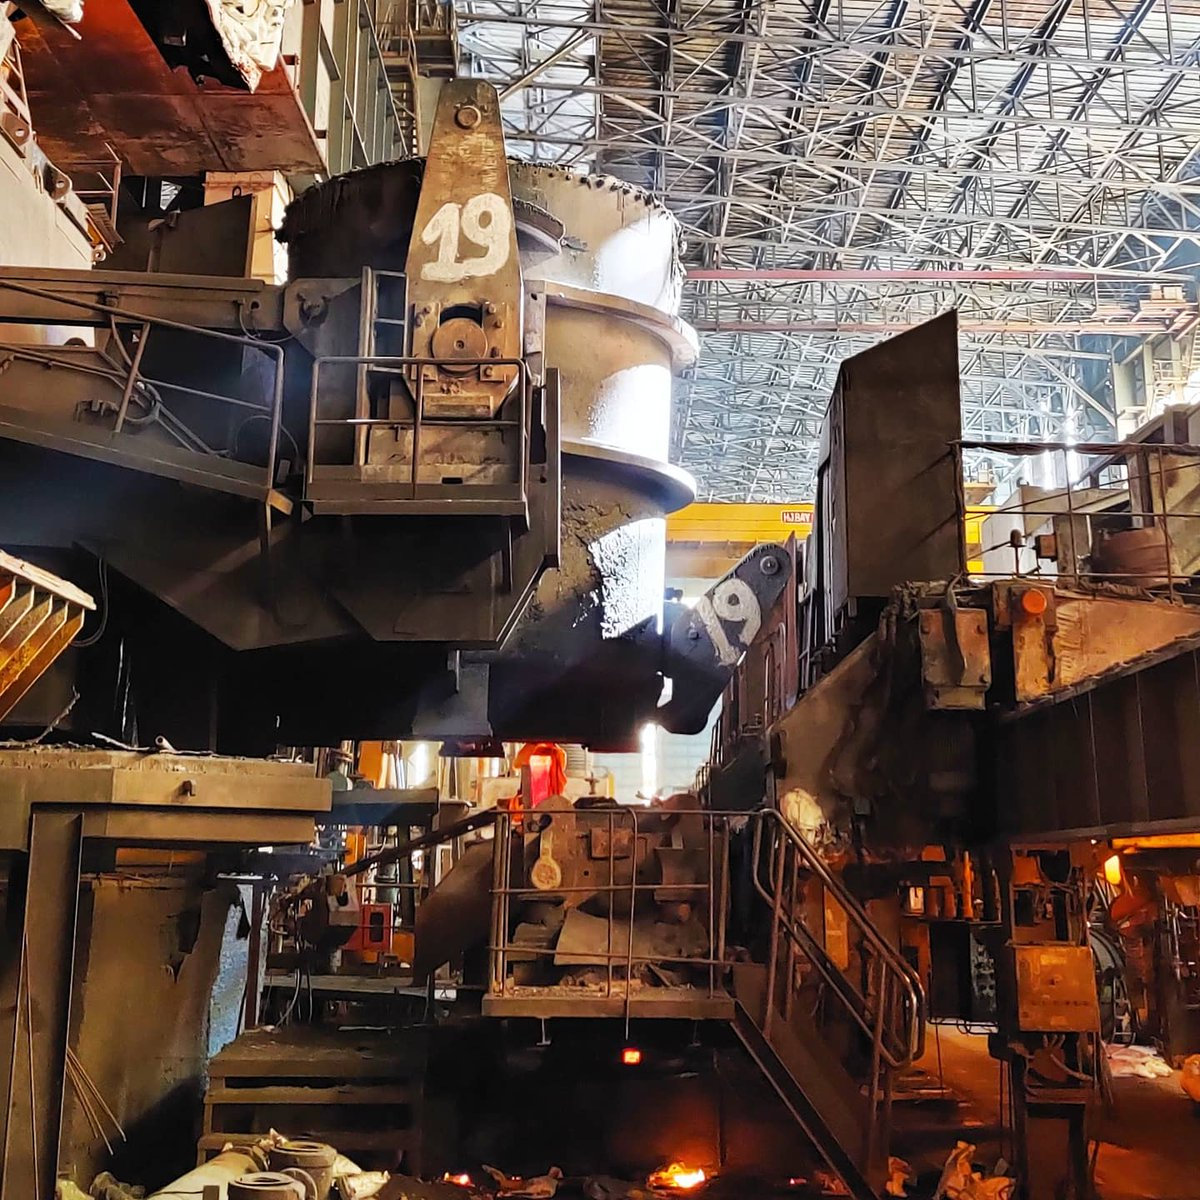 Modern day continuous caster  #casting #Continuouscasting #steelplant #steel #metallurgy #materials https://t.co/muHWazhqKL